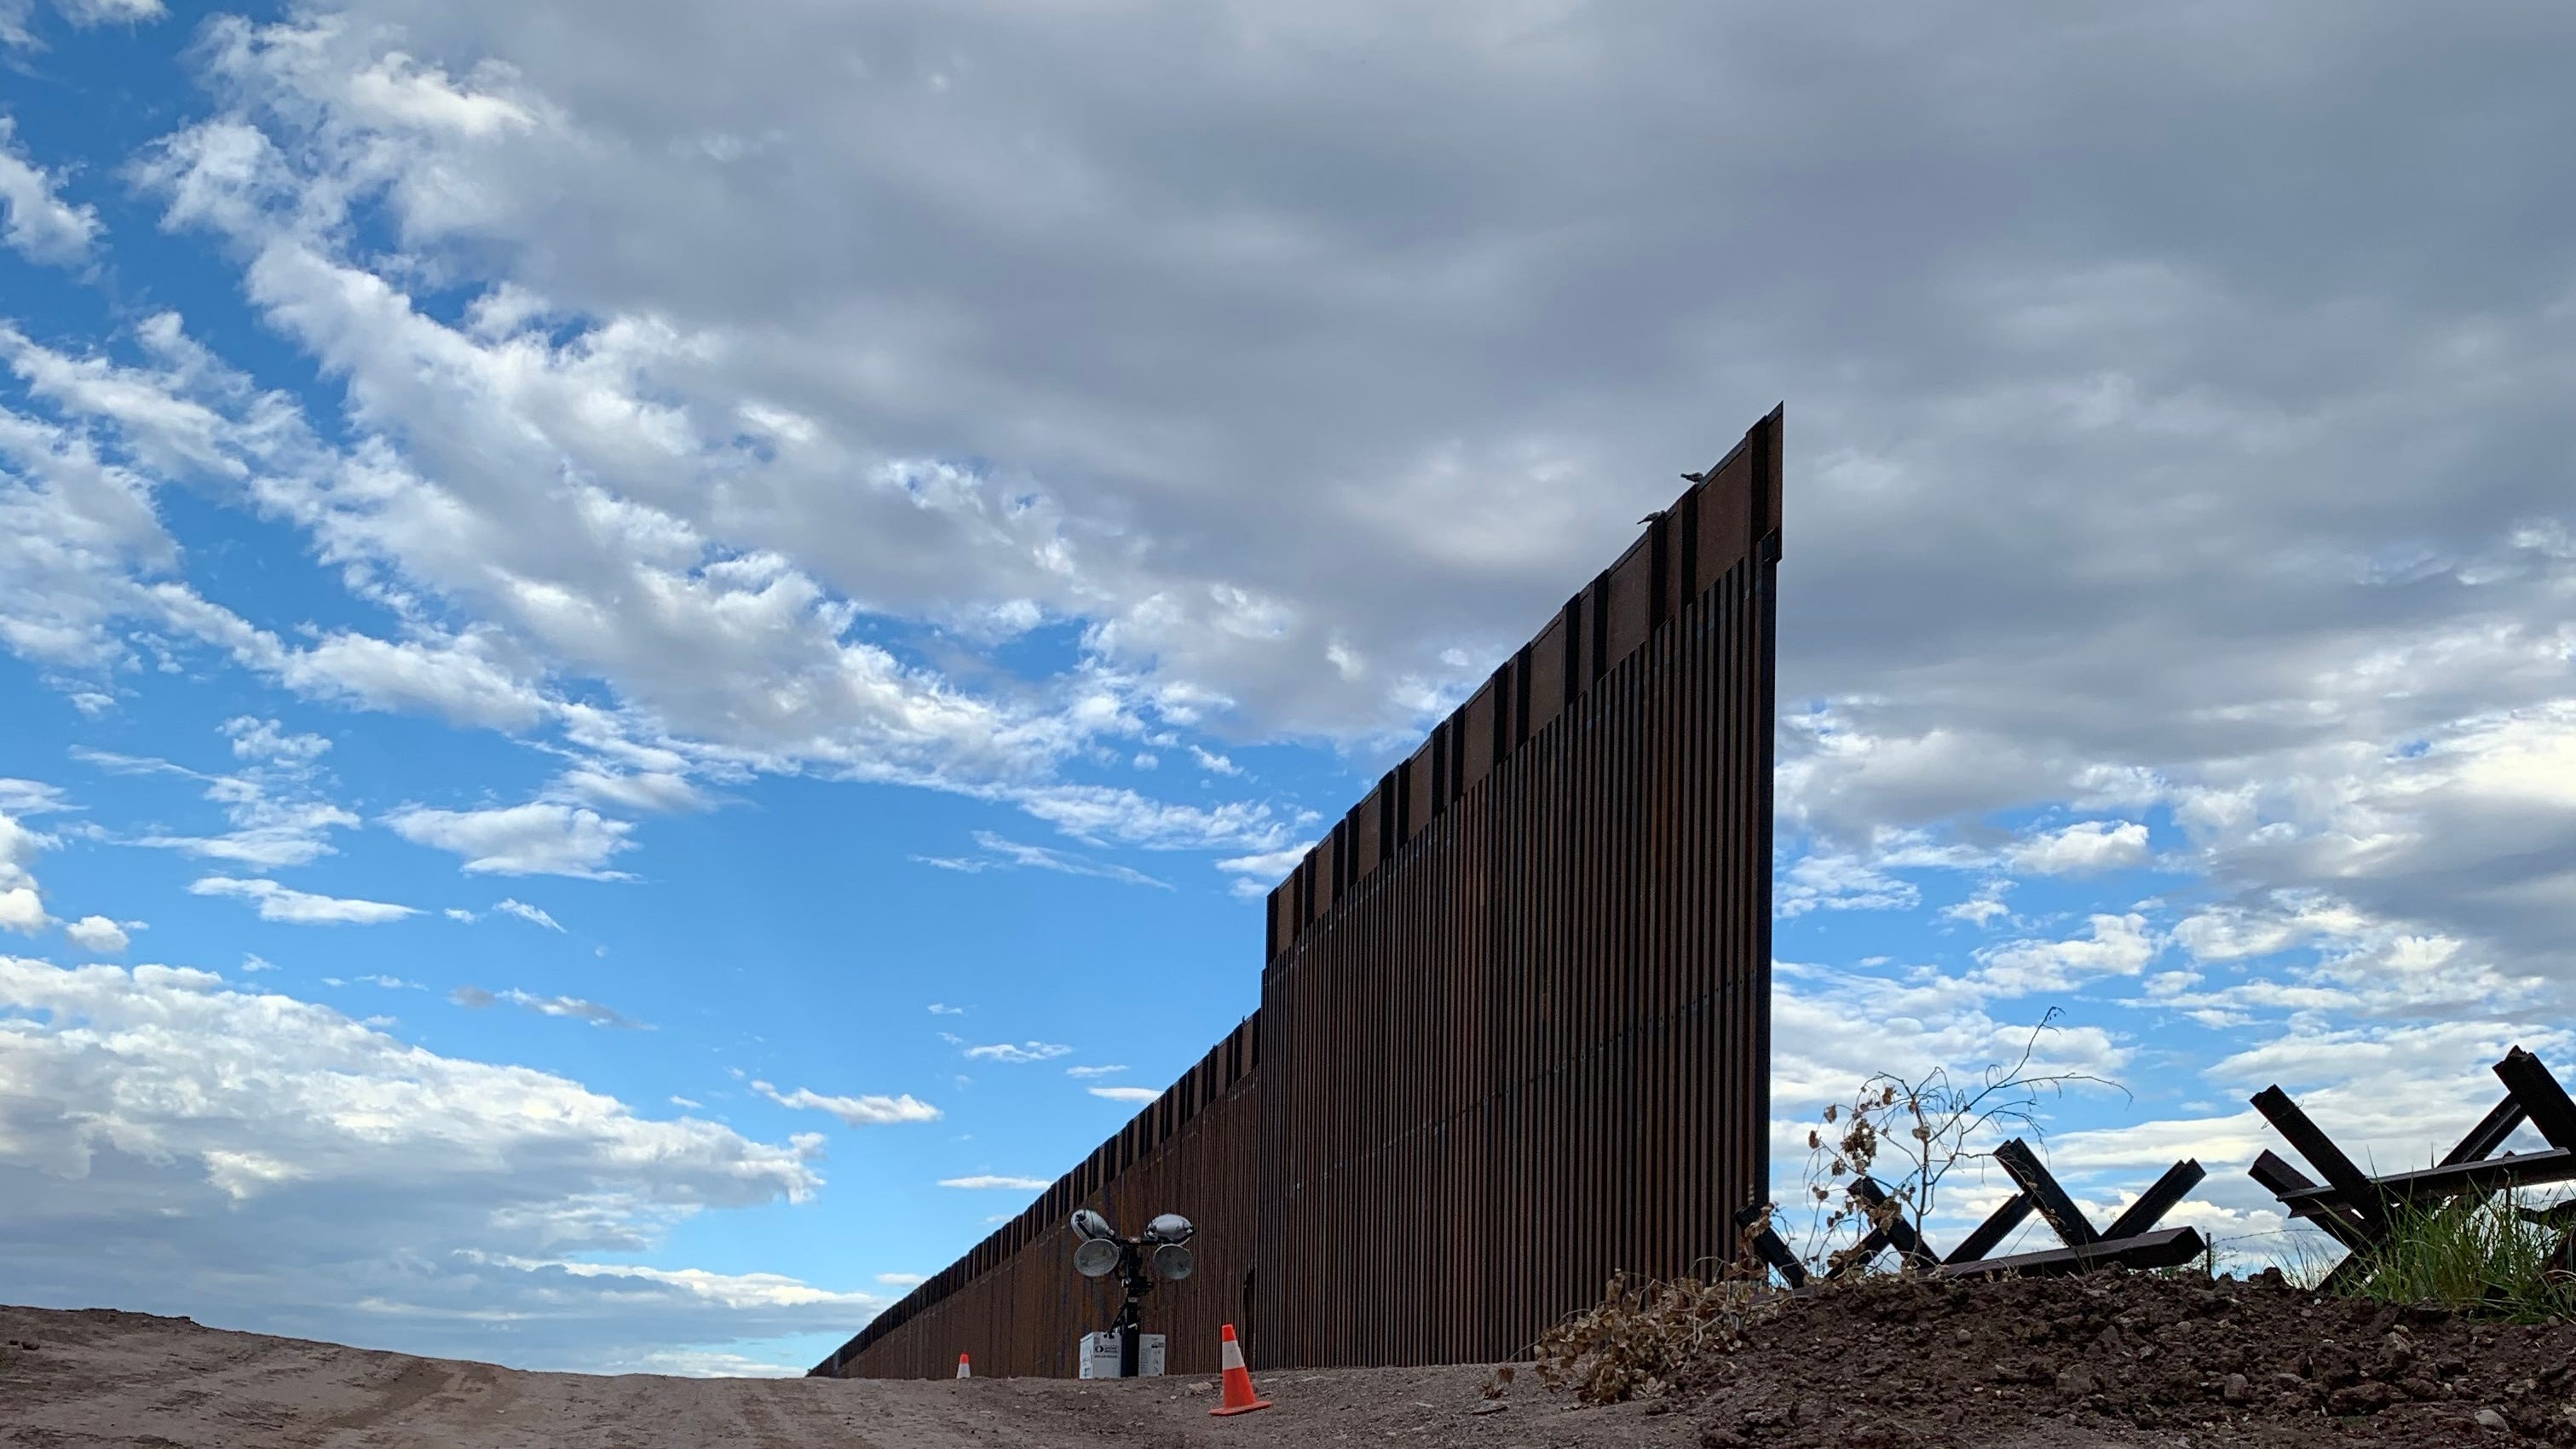 Trump administration prioritized border wall construction over other options in flawed process, government audit says